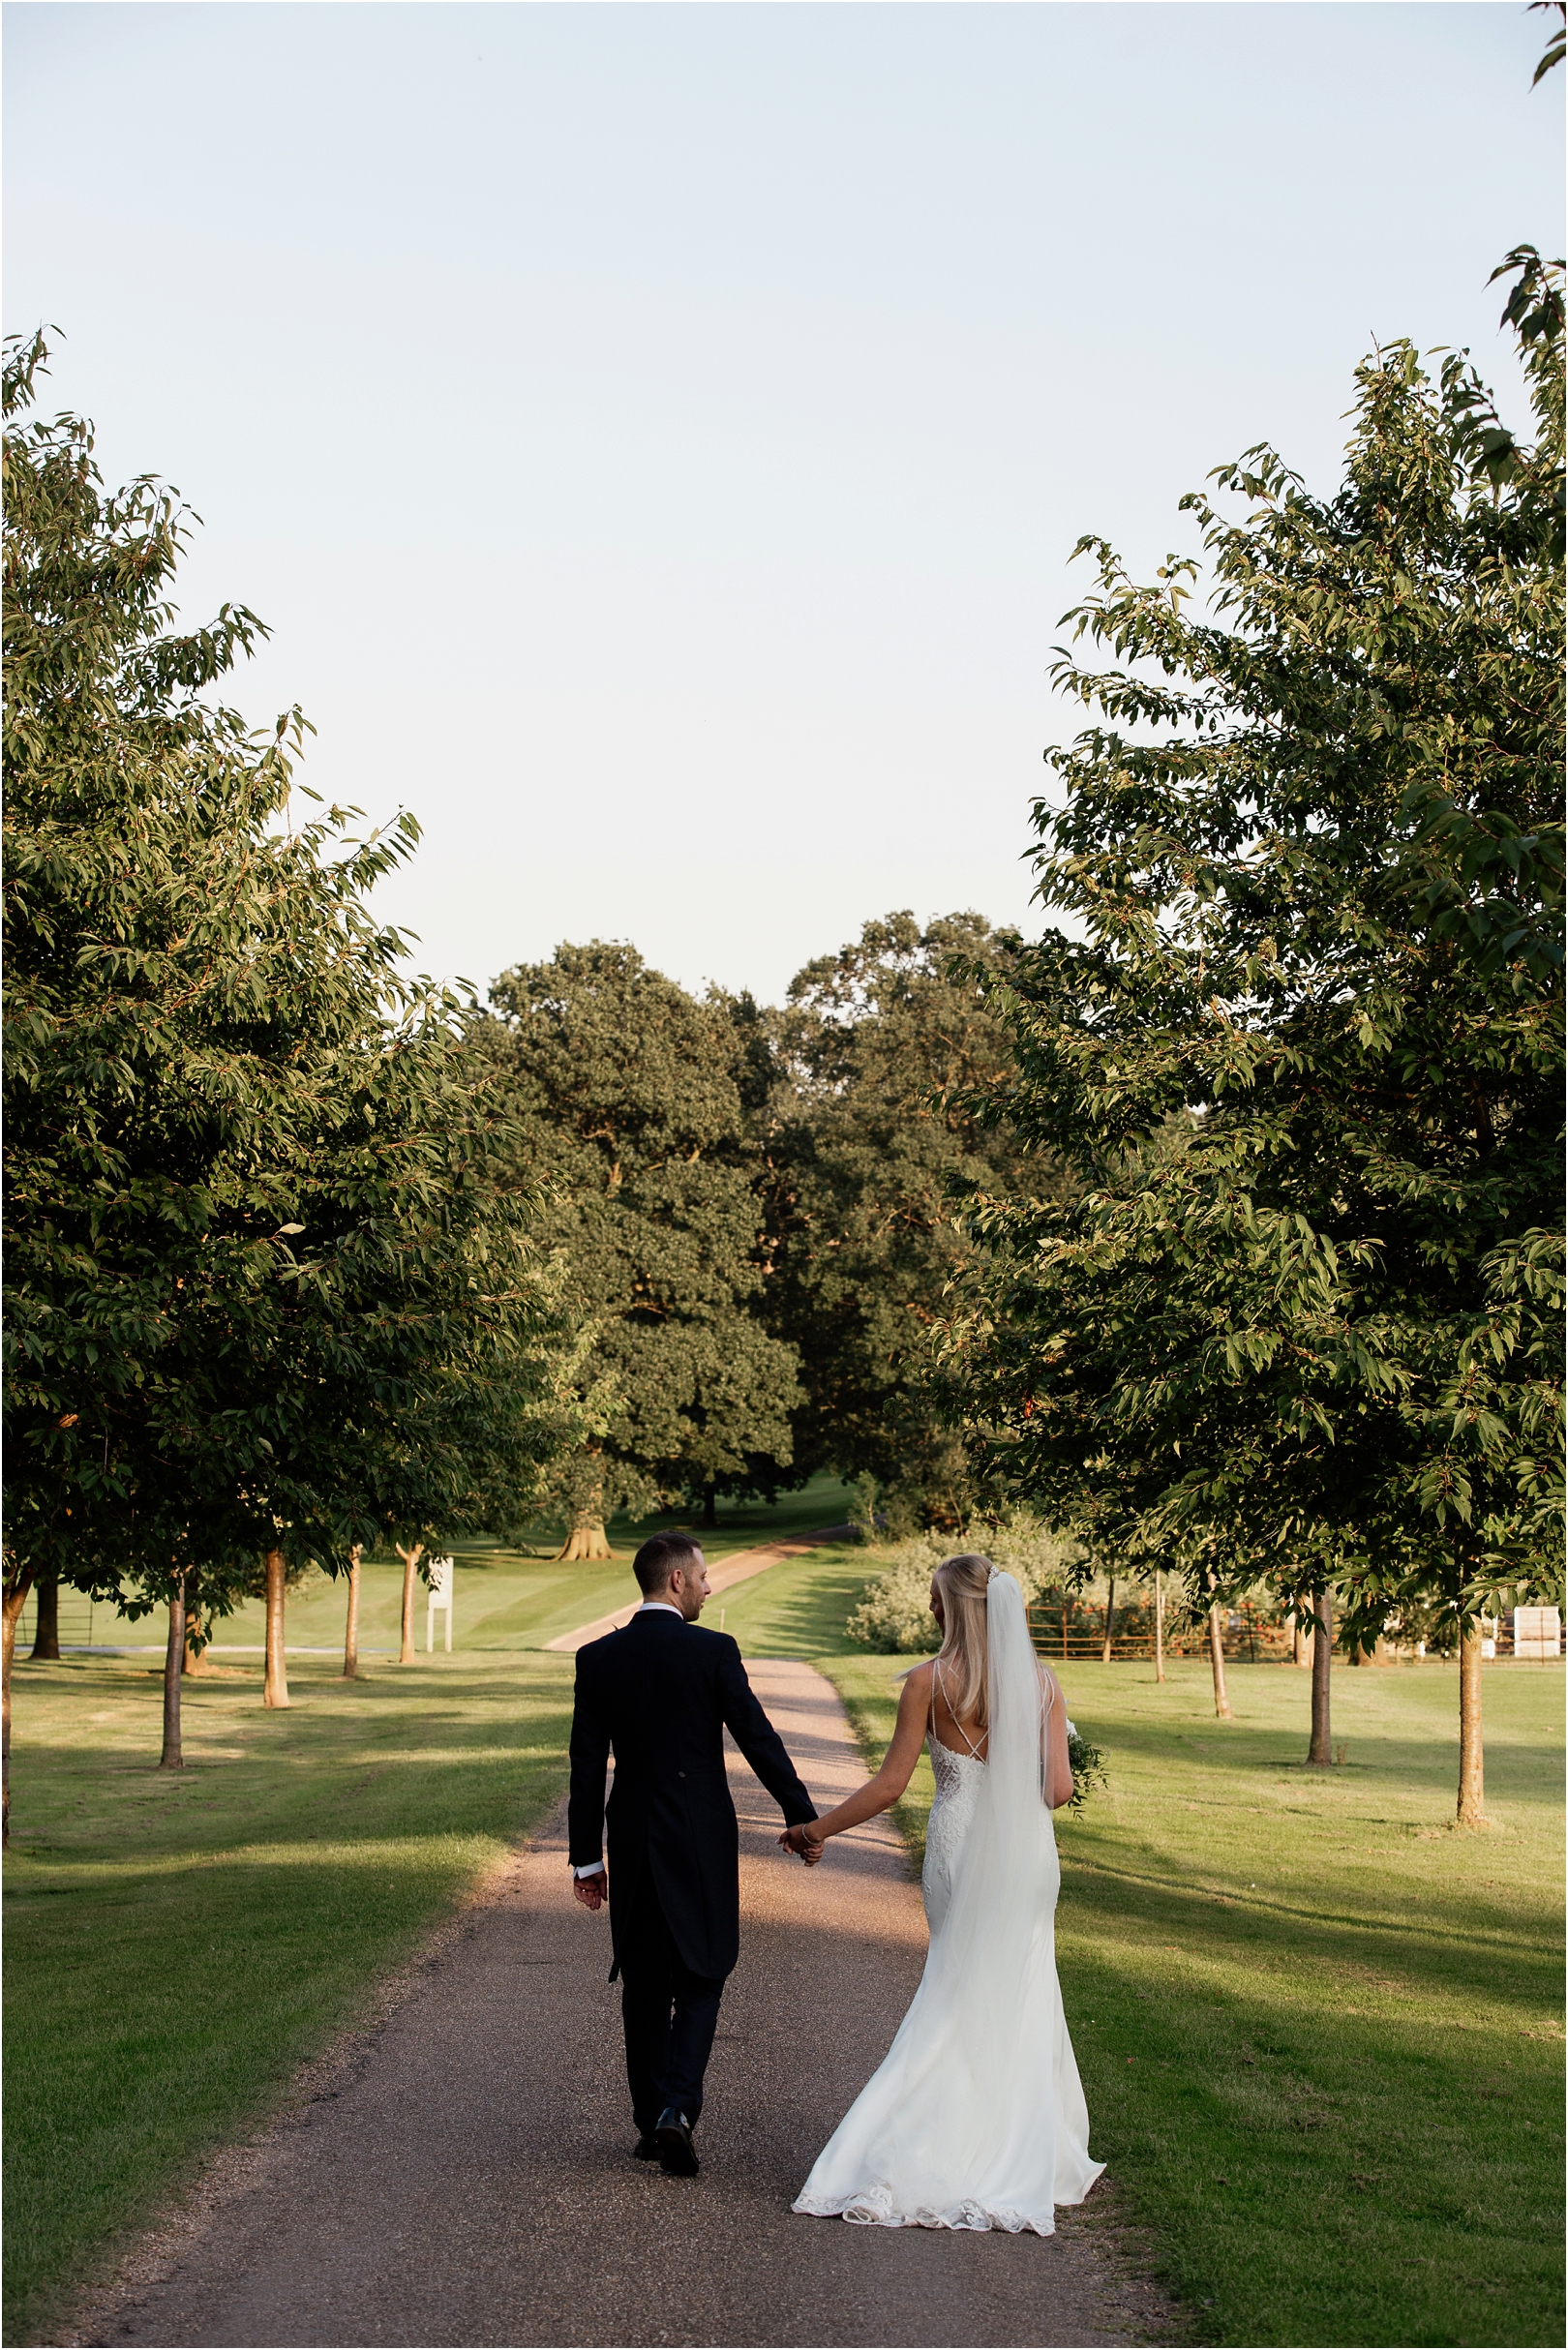 wedding photography at Norwood Park